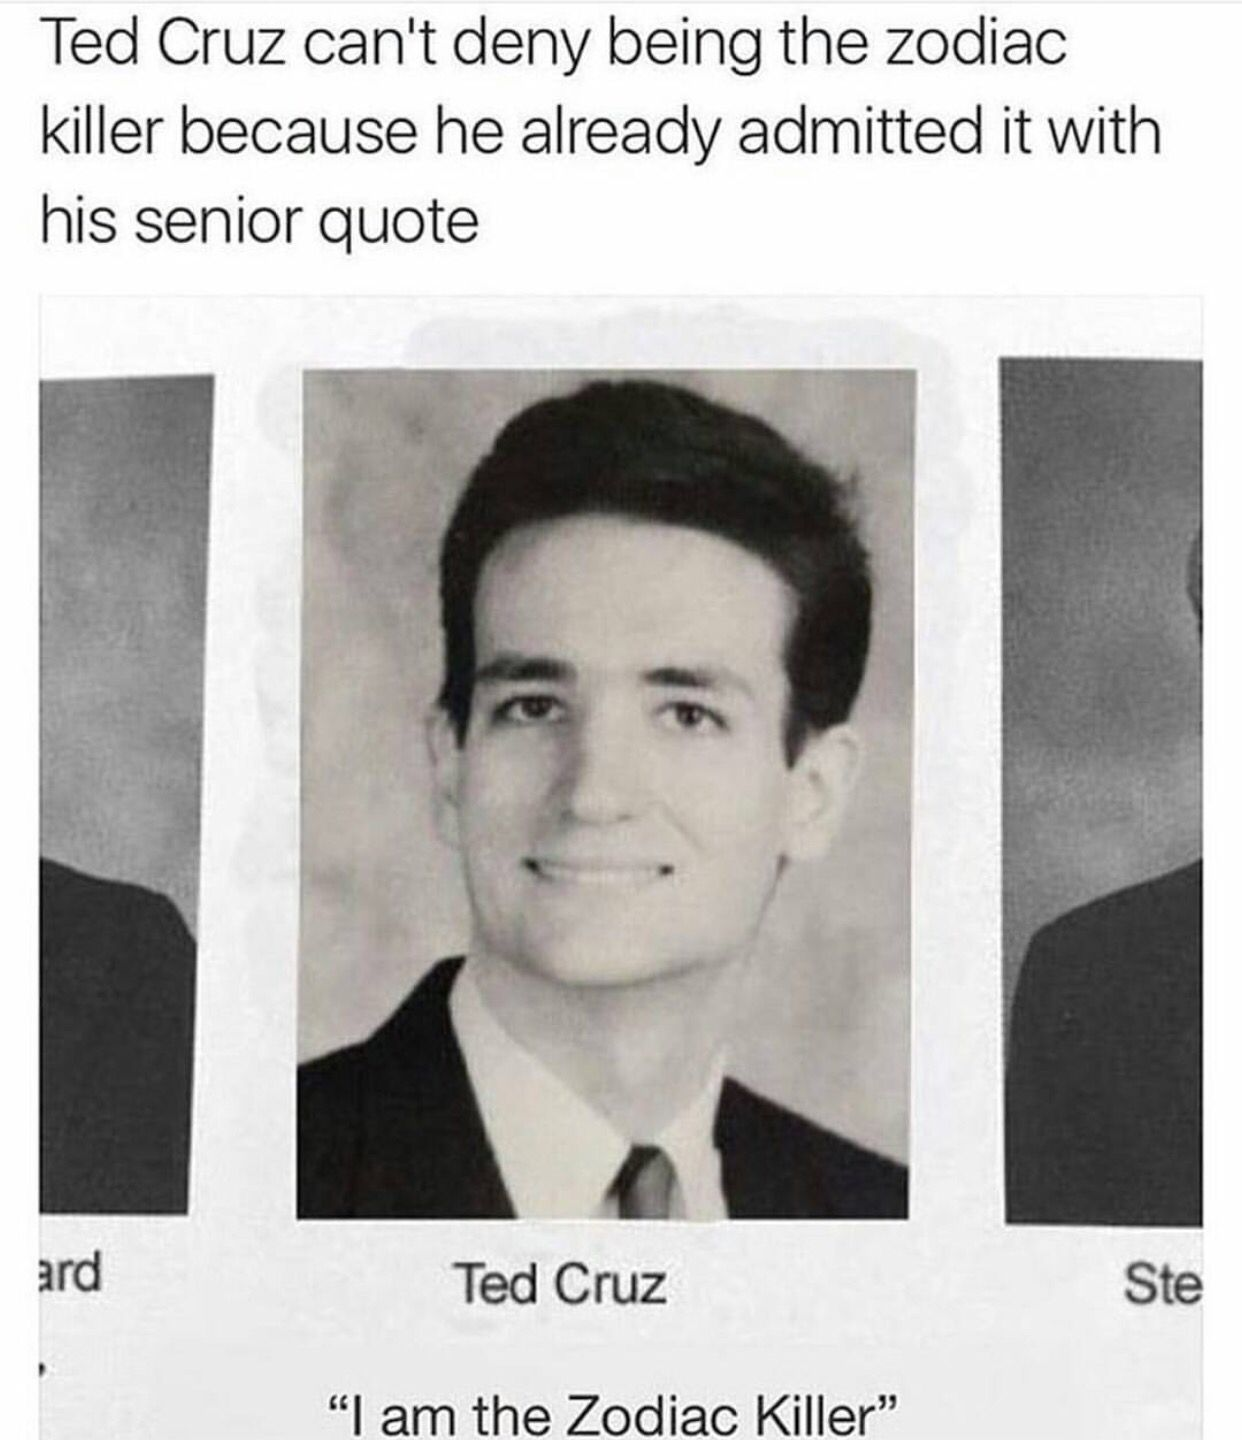 A facetious conspiracy theory, the meme suggests that ted cruz,. Ted Cruz Meme Zodiac : Funny Zodiac Killer Memes of 2017 ...